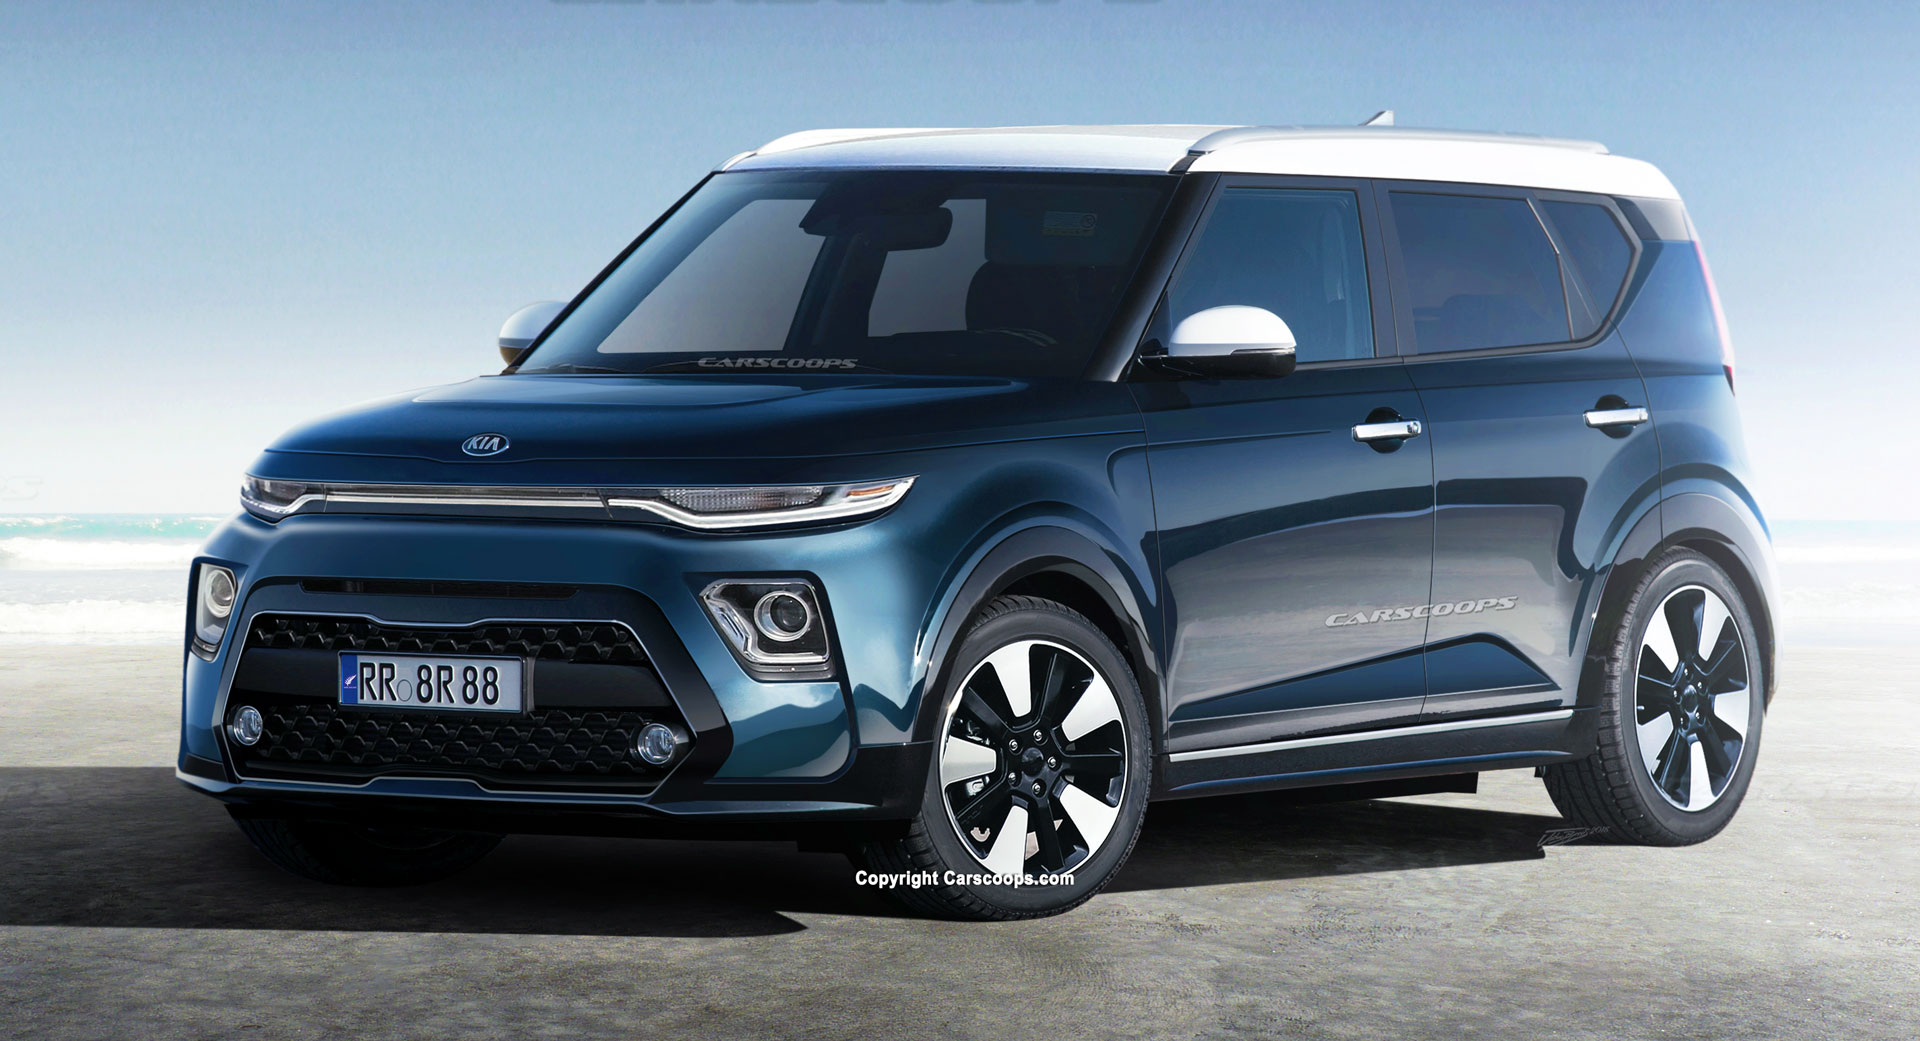 2020 Kia Soul: Looks, Interior, Engines And Everything Else - 2022 Kia Soul Black Configurations, Electric Interior